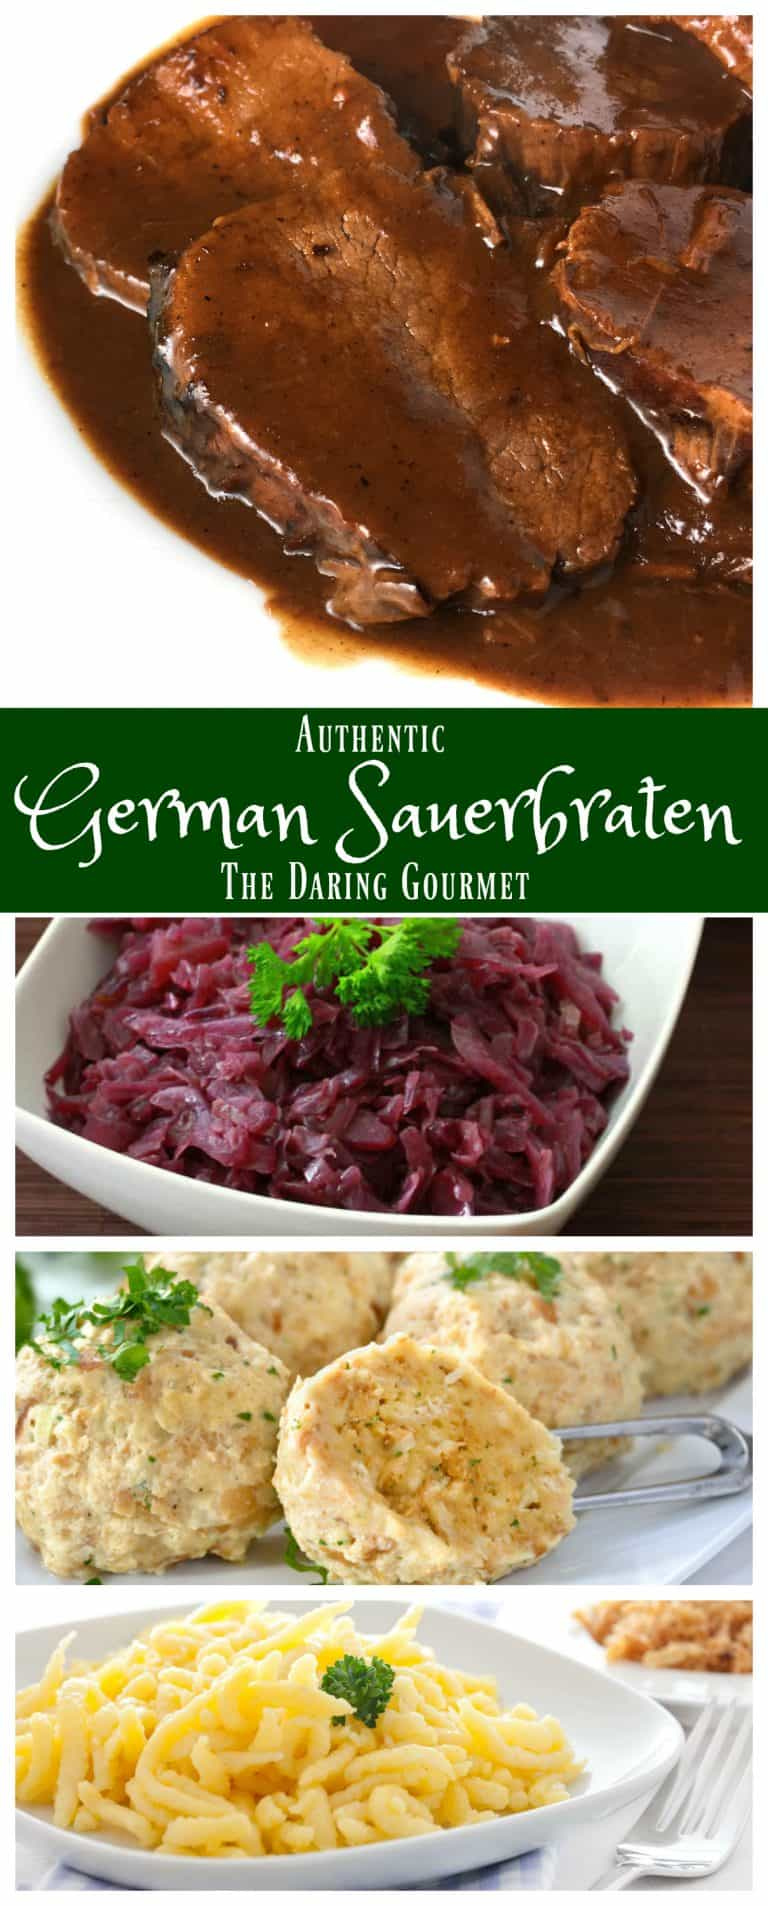 sauerbraten recipe German authentic traditional best